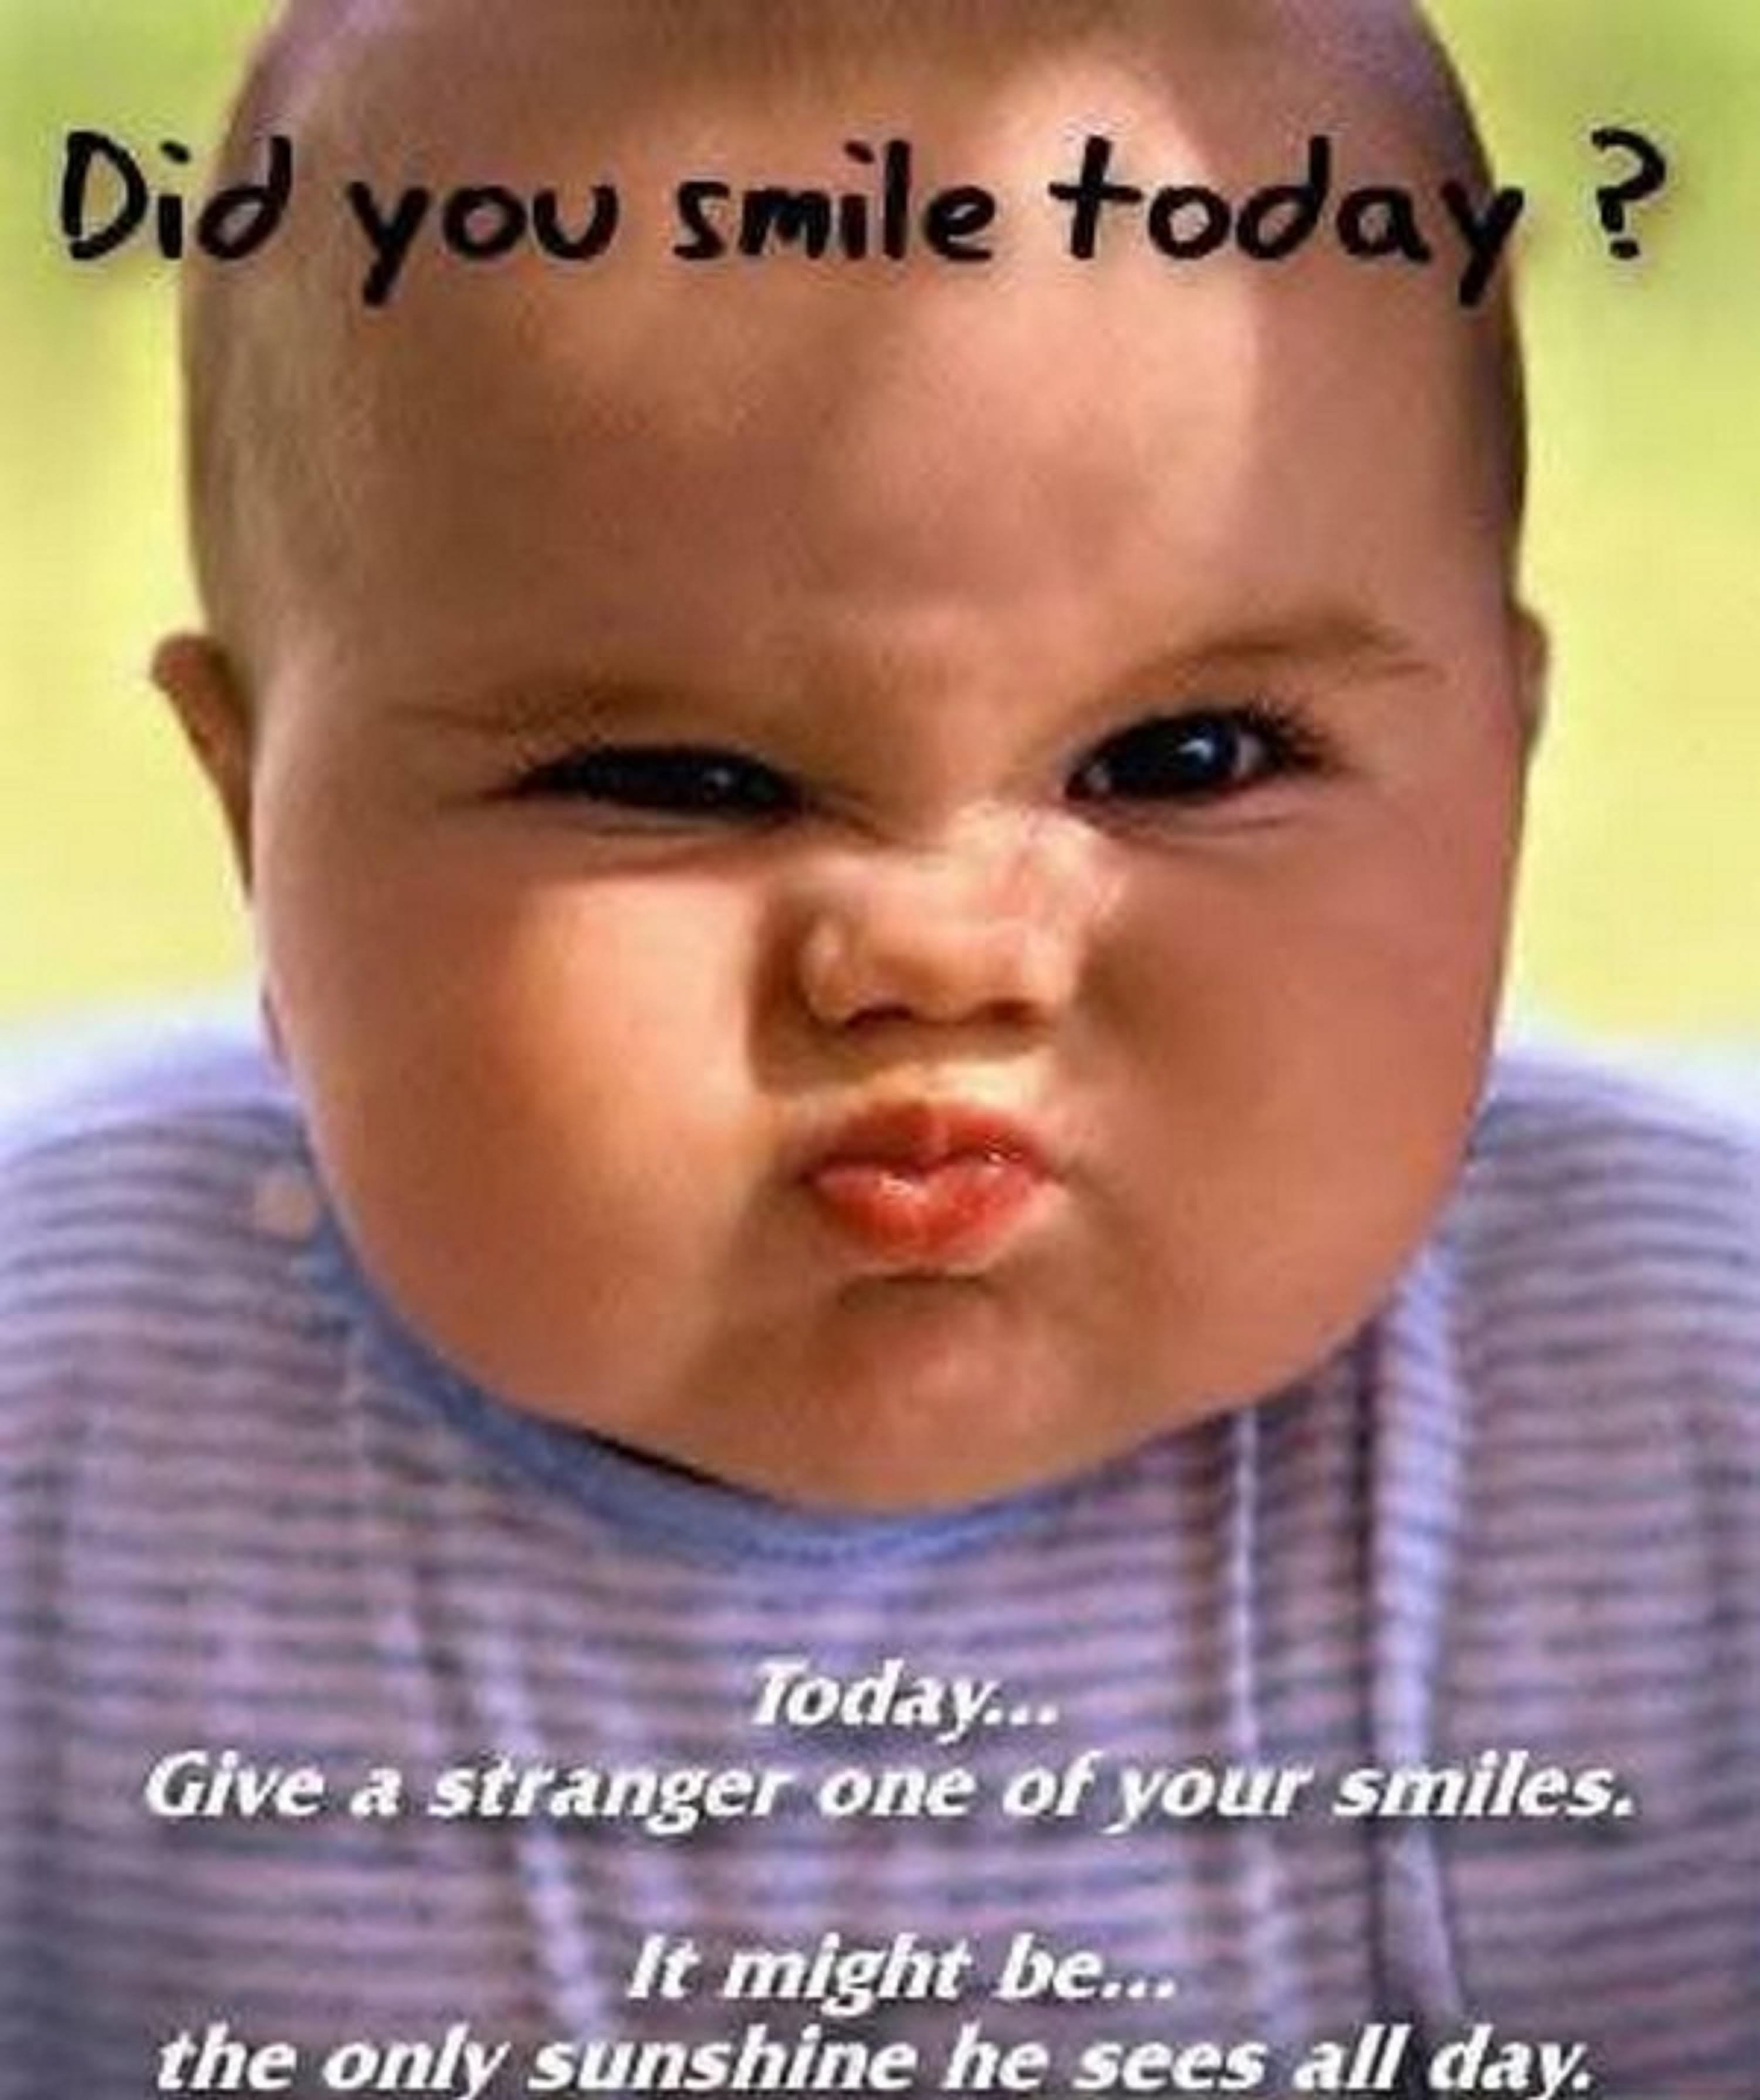 Funny Baby Faces With Captions In Hindi